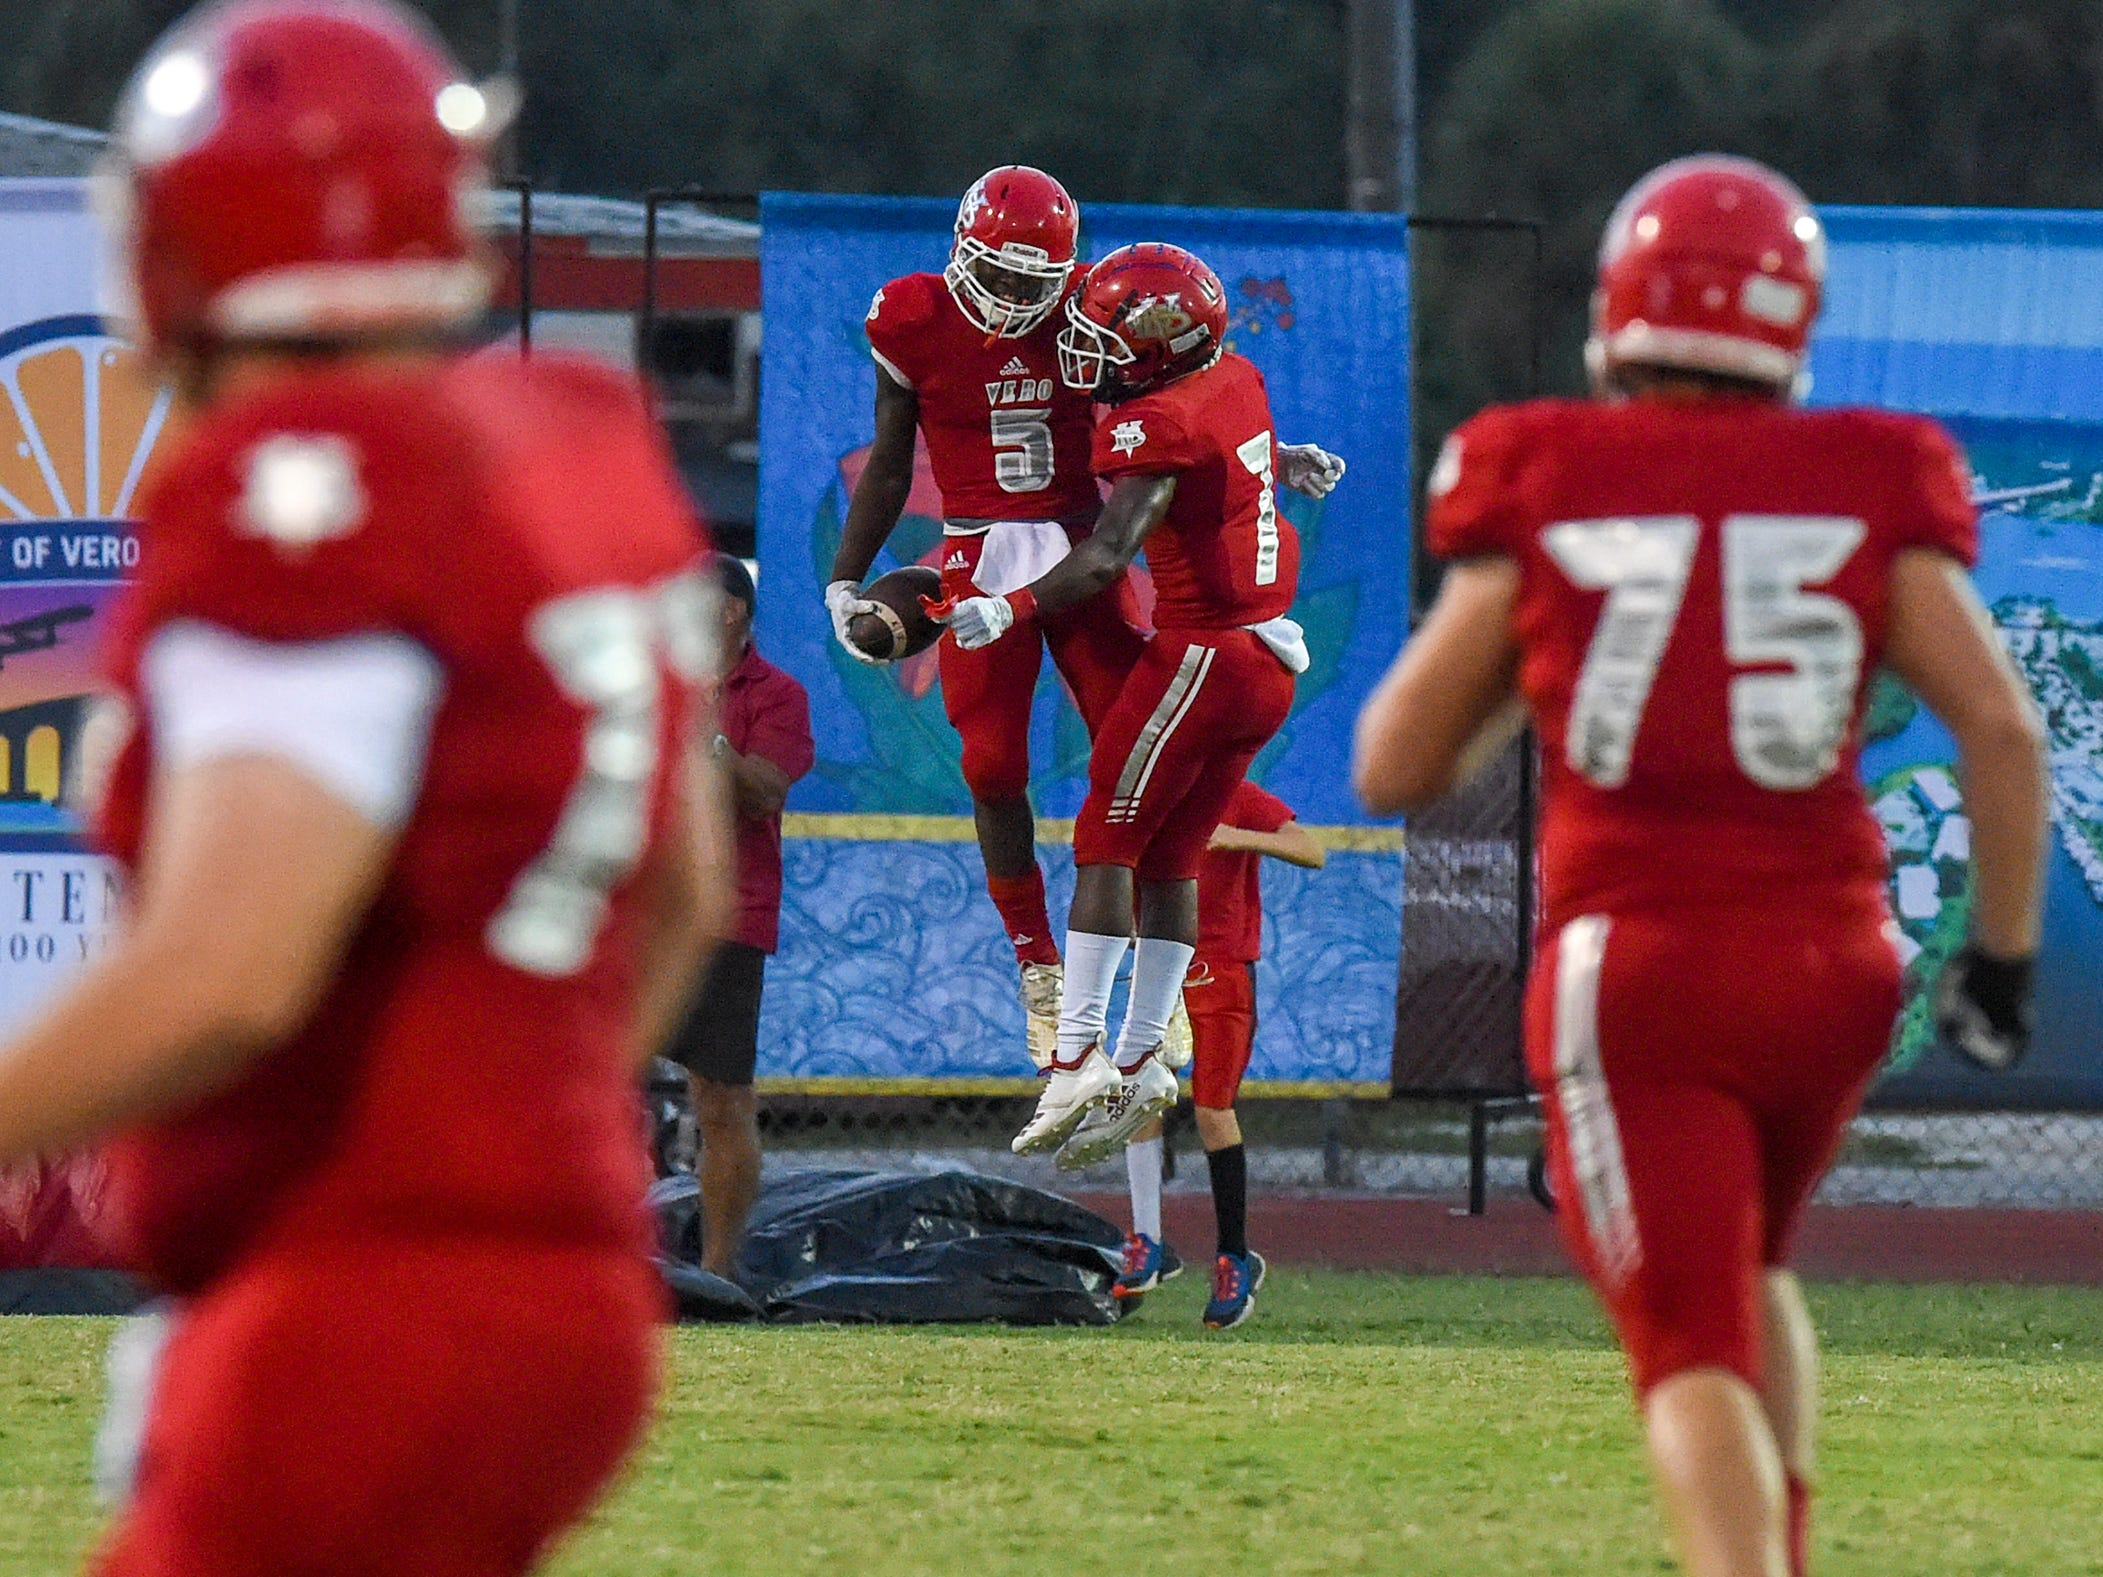 Vero Beach's Jermaine Dawson (5) and Keith Woulard (7) celebrate in the end zone Friday, Oct. 12, 2018, after Dawson scored his team's first touchdown during their high school football game against Treasure Coast at Vero Beach High School. Vero Beach defeated Treasure Coast 34-31.